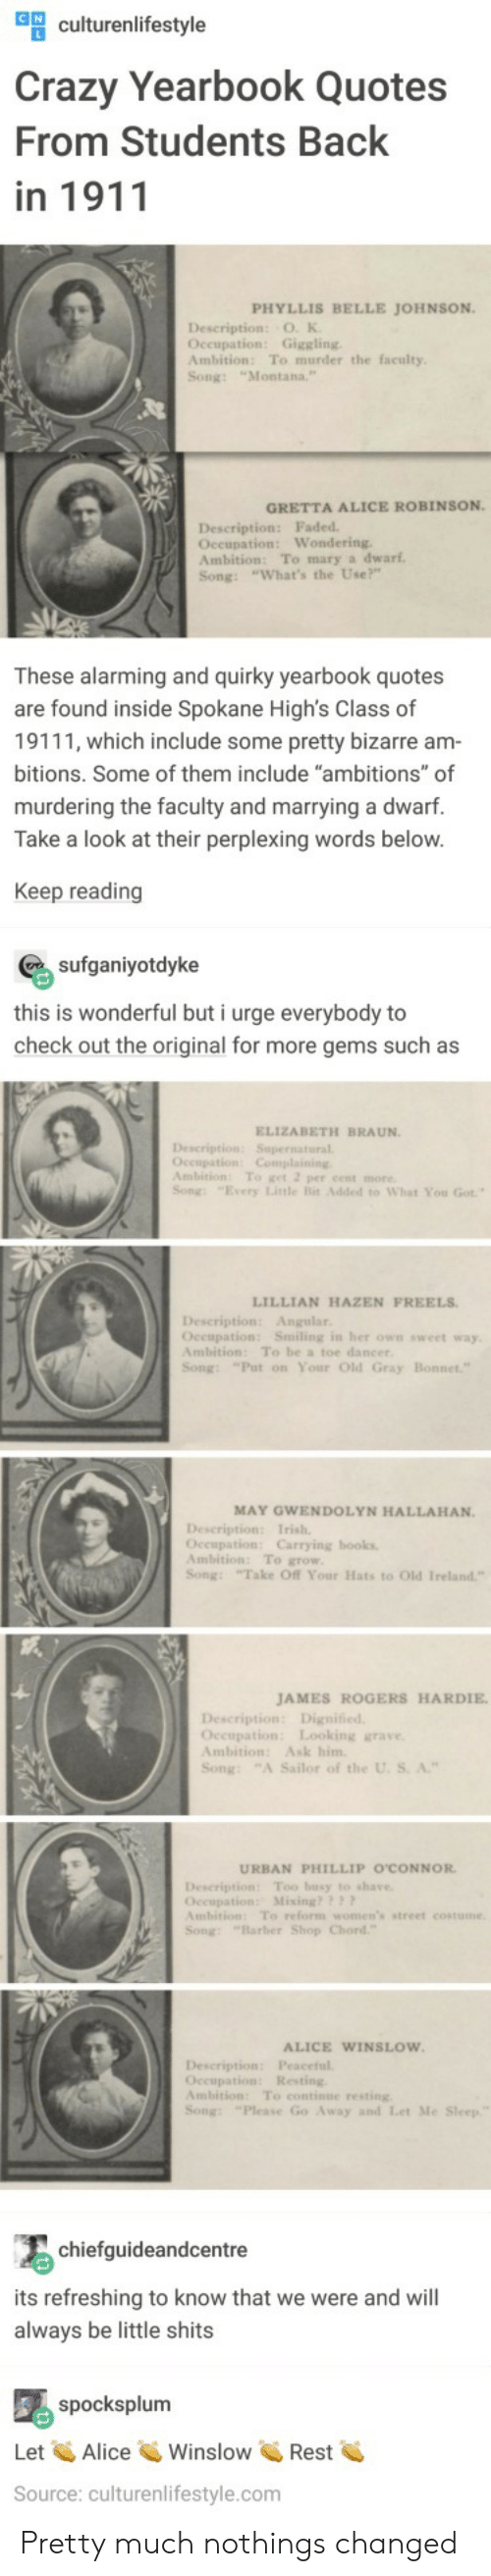 """occupation: ulturenlifestyle  Crazy Yearbook Quotes  From Students Back  in 1911  PHYLLIS BELLE JOHNSON  Description: O. K  Occupation: Giggling  Ambition: To murder the faculty  Song: """"Montana.  GRETTA ALICE ROBINSON  Description: Faded  Oceupation: Wondering  Ambition: To mary a dwarf  Song: """"What's the Use?""""  These alarming and quirky yearbook quotes  are found inside Spokane High's Class of  19111, which include some pretty bizarre am  bitions. Some of them include """"ambitions"""" of  murdering the faculty and marrying a dwarf.  Take a look at their perplexing words below  Keep reading  sufganiyotdyke  this is wonderful but i urge everybody to  check out the original for more gems such as  ELIZABETH BRAUN  Description: Supernatural  Ambition: To get 2 per cent more  Song: """"Every Litle Bit Added to What You Got  LILLIAN HAZEN FREELS  Description: Angular  Oceupation: Smiling in her own sweet way  Ambition: To be a toe dancer  Song: """"Put on Your Old Gray  MAY GWENDOLYN HALLAHAN.  Occupation: Carrying books  Ambition: To grow  Song: Take Off Your Hats to Old Ireland""""  JAMES ROGERS HARDIE  Occupation: Looking grave  Ambition: Ask him  Song: """"A Sailor of the U. S. A.""""  URBAN PHILLIP O'CONNOR  Description Too busy to shave  Occupation: Mixing??  mbition: To reform women's street costume  Song: """"Barber Shop Chord  ALICE WINSLOW  Description: Peaceful  Occupation: Resting  Ambition: To continue resting  Song: """"Please Go Away and Let Me  chiefguideandcentre  its refreshing to know that we were and will  always be little shits  spocksplum  Let AliceWinslowRest  Source: culturenlifestyle.com Pretty much nothings changed"""